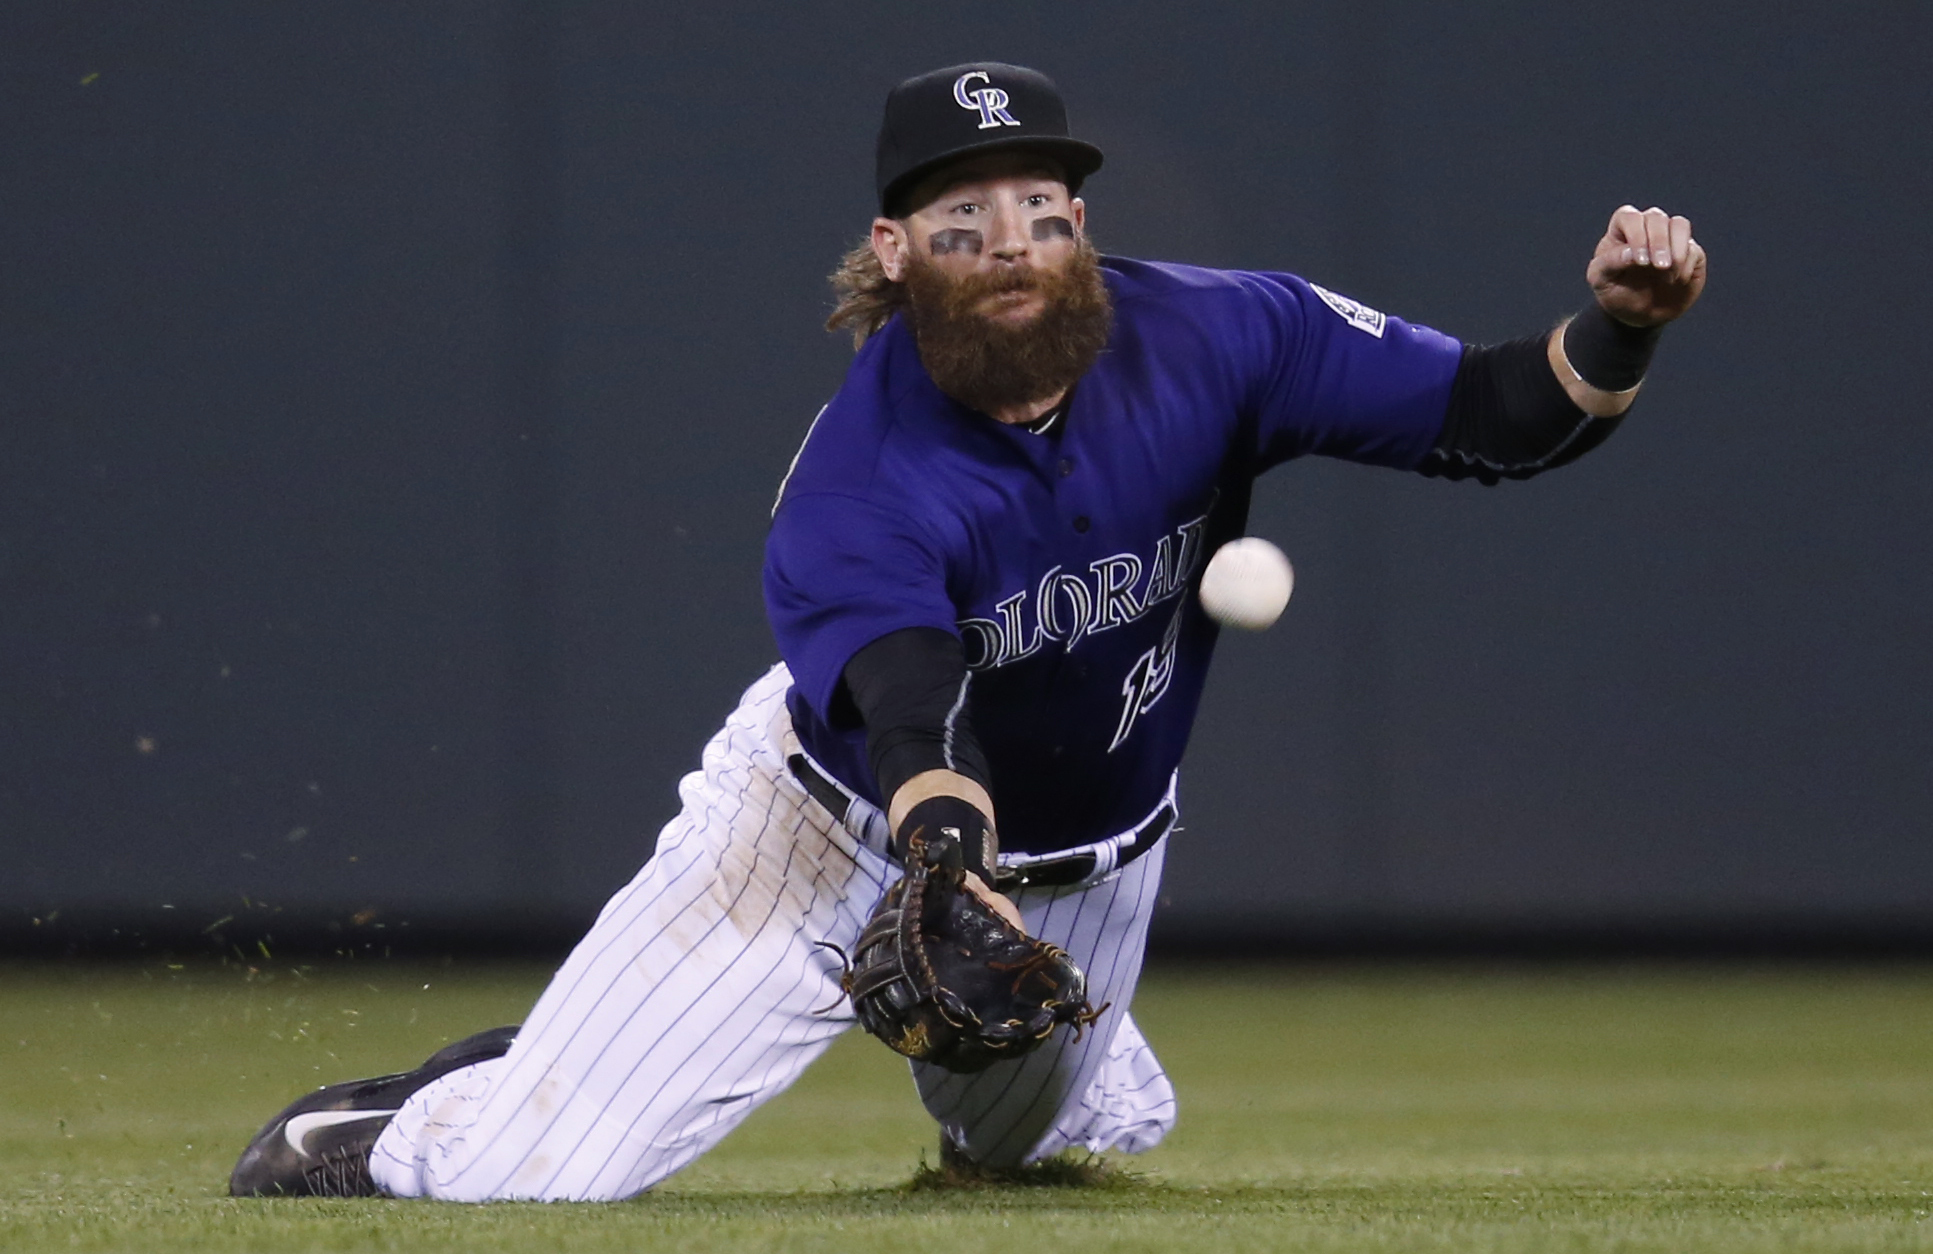 Colorado Rockies center fielder Charlie Blackmon dives but fails to field a double off the bat of Arizona Diamondbacks' Welington Castillo in the fifth inning of a baseball game, Monday, May 9, 2016, in Denver. (AP Photo/David Zalubowski)